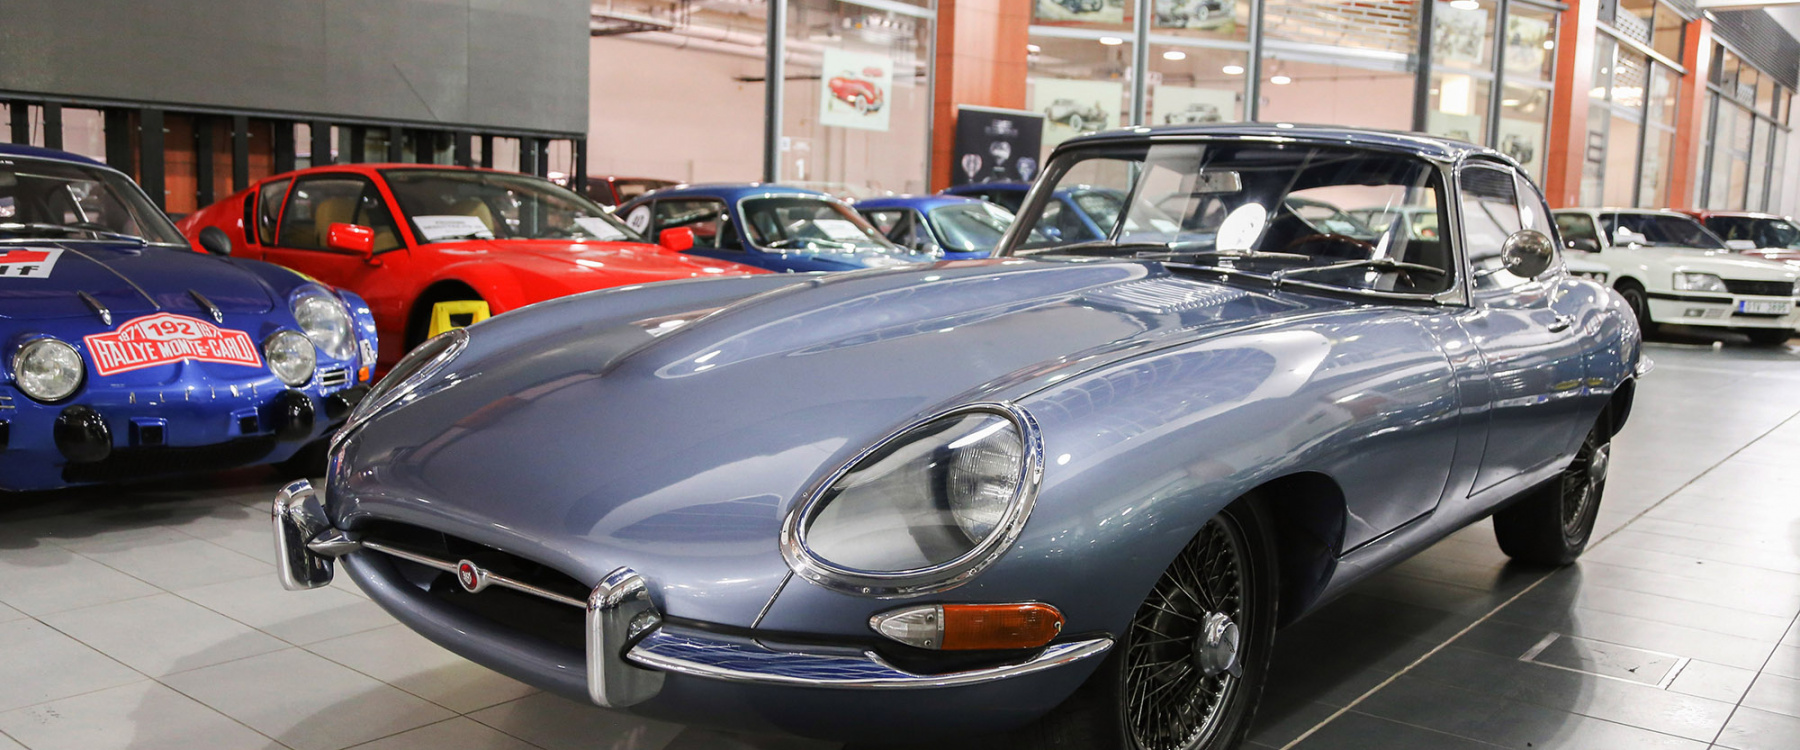 Jaguar E-Type S1 4.2l